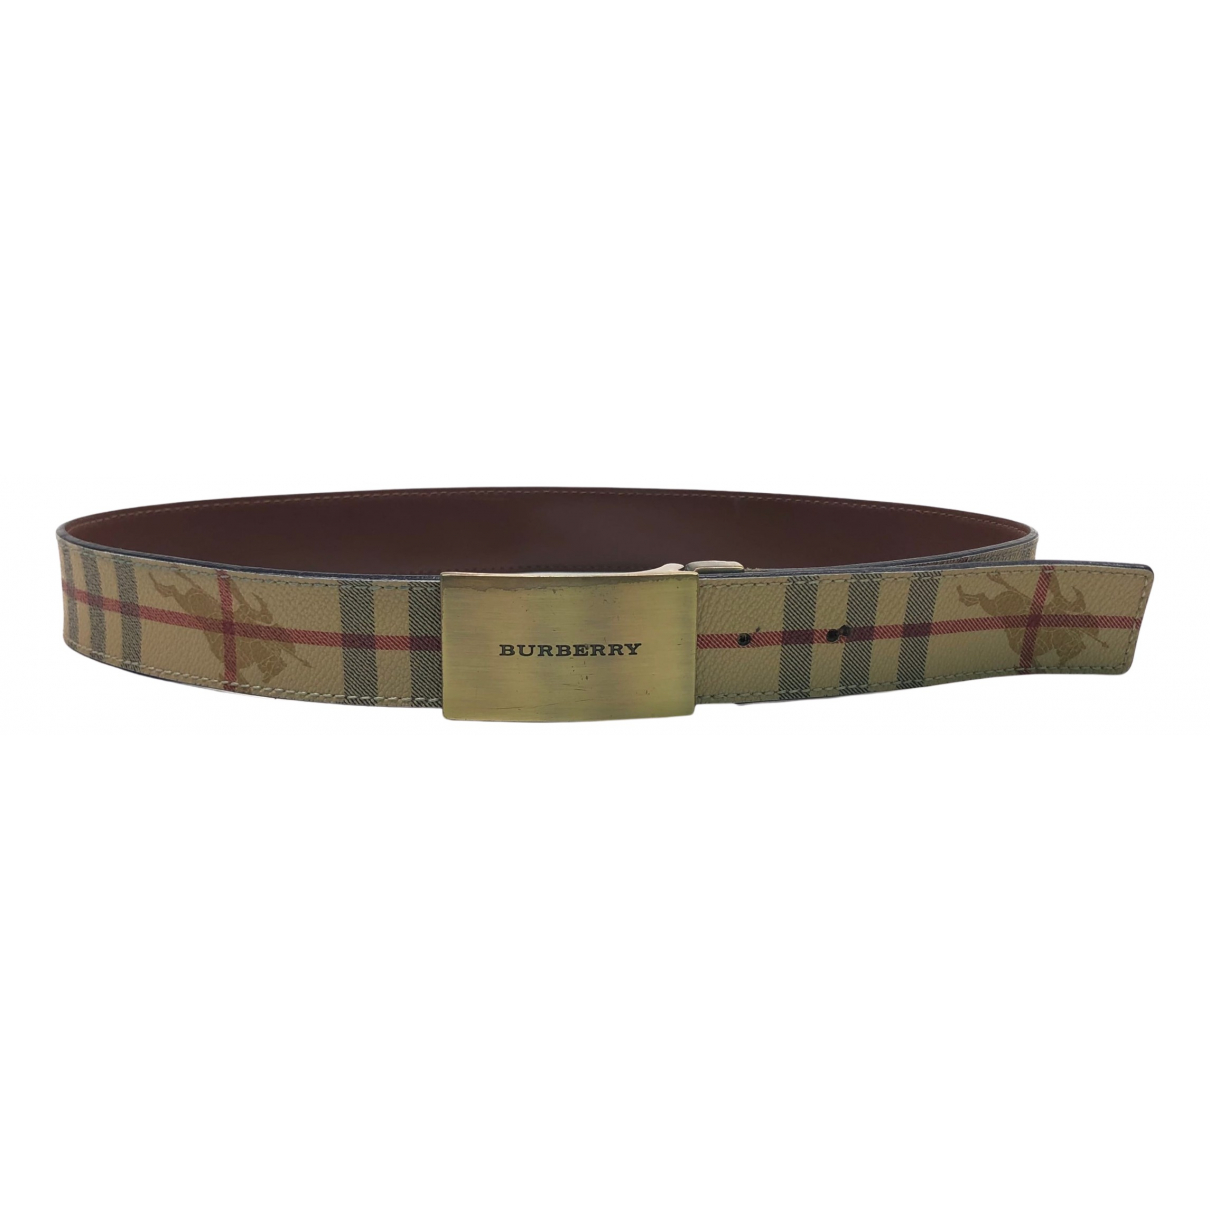 Burberry N Beige Cloth belt for Women 80 cm